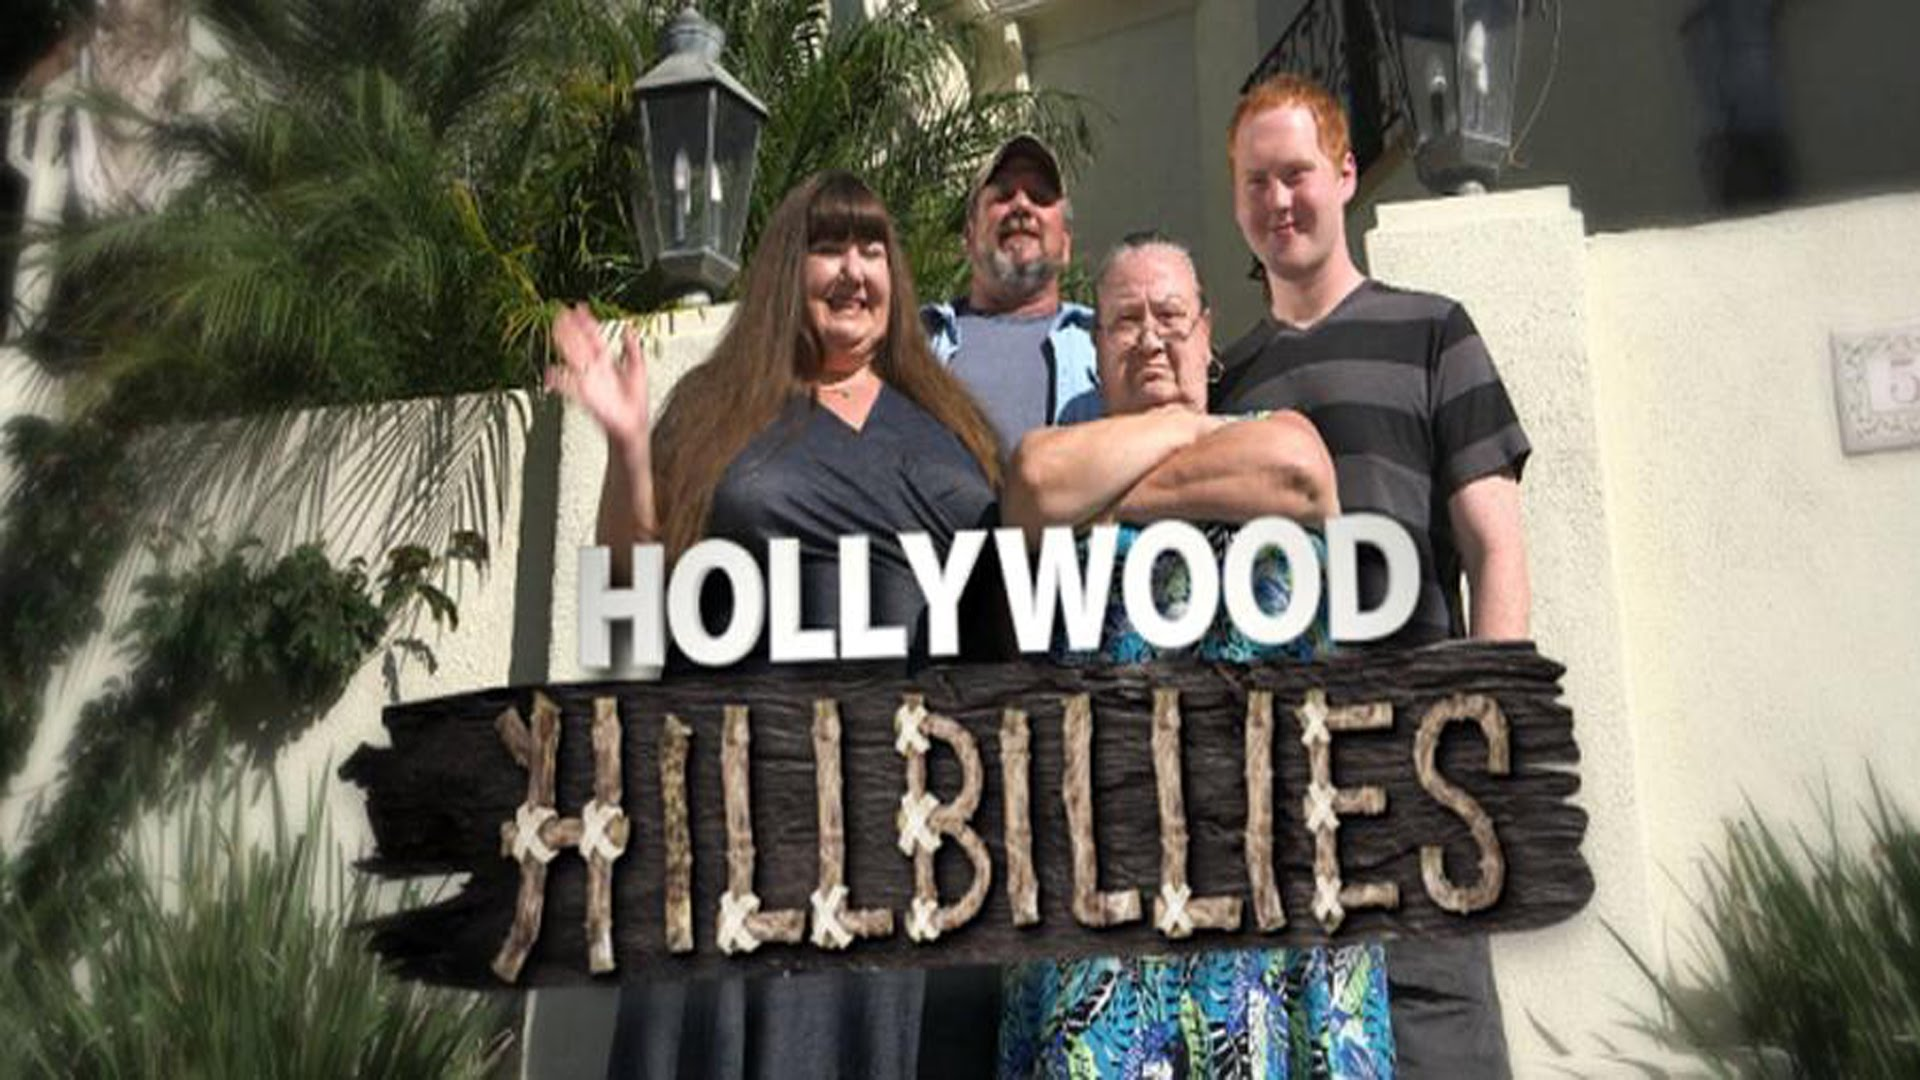 Hollywood Hillbillies Season 4 1